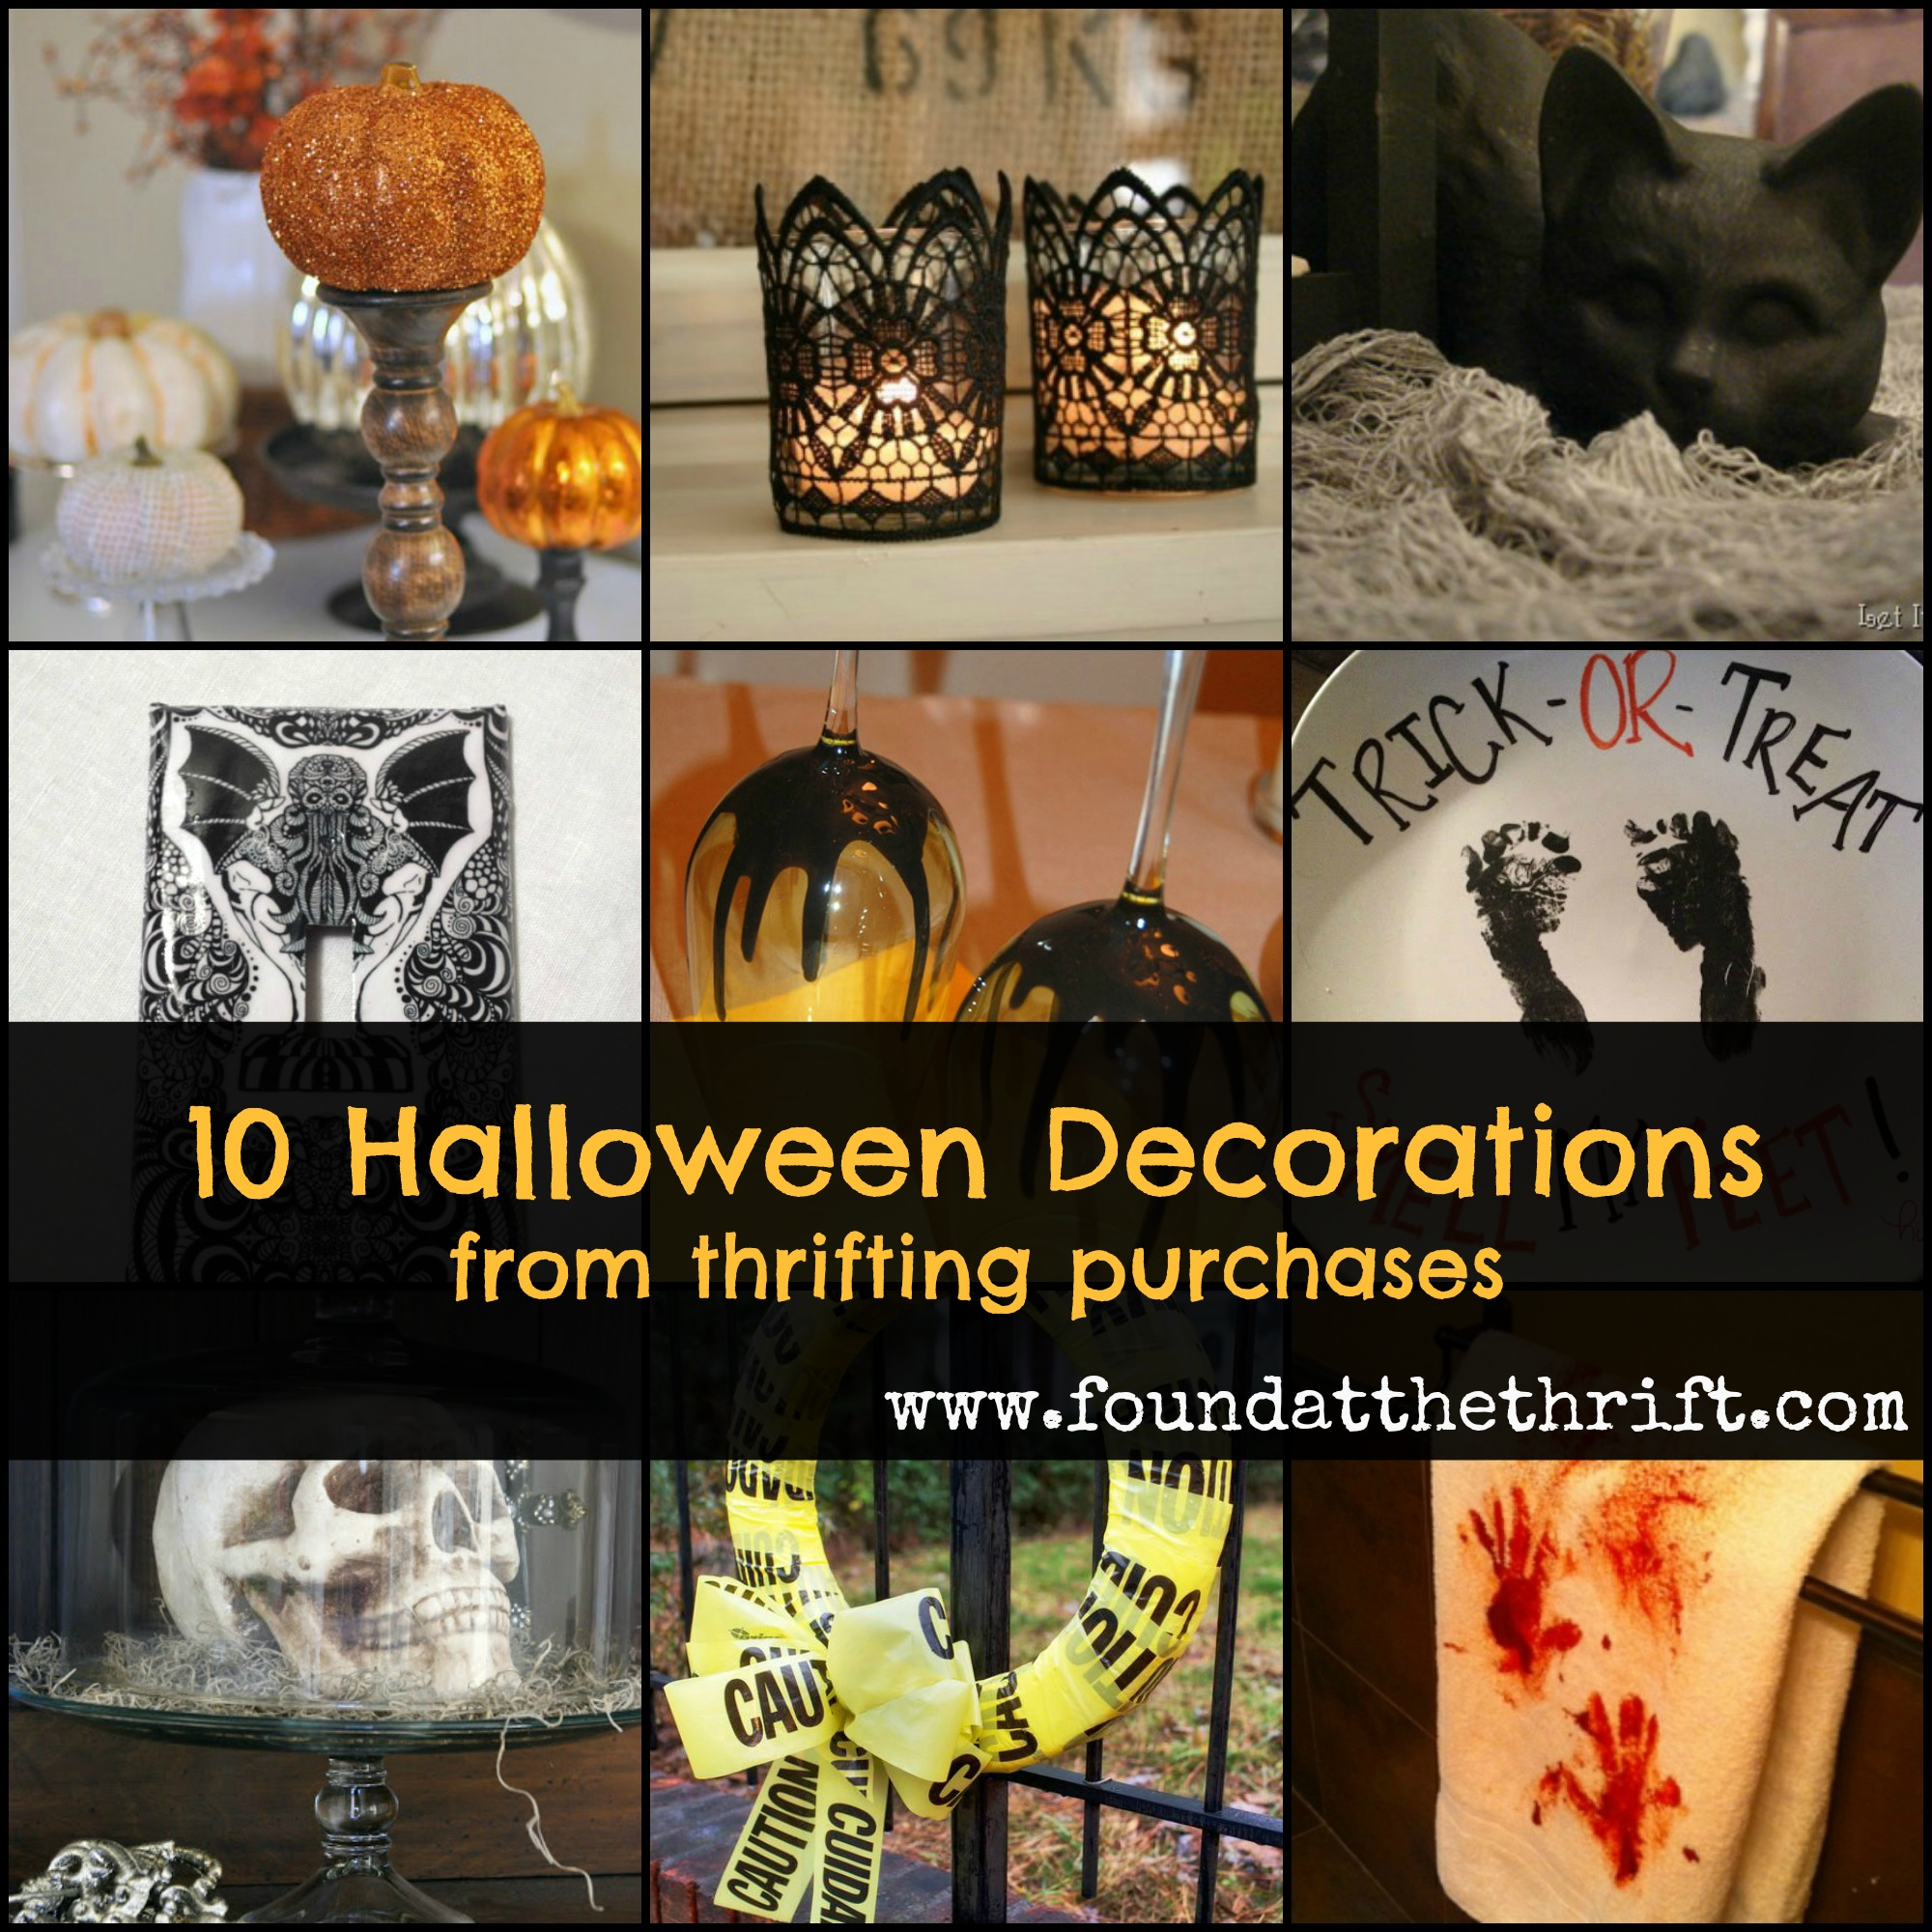 found at the thrift 10 halloween decorations from thrifting purchases halloween decor from thrifting